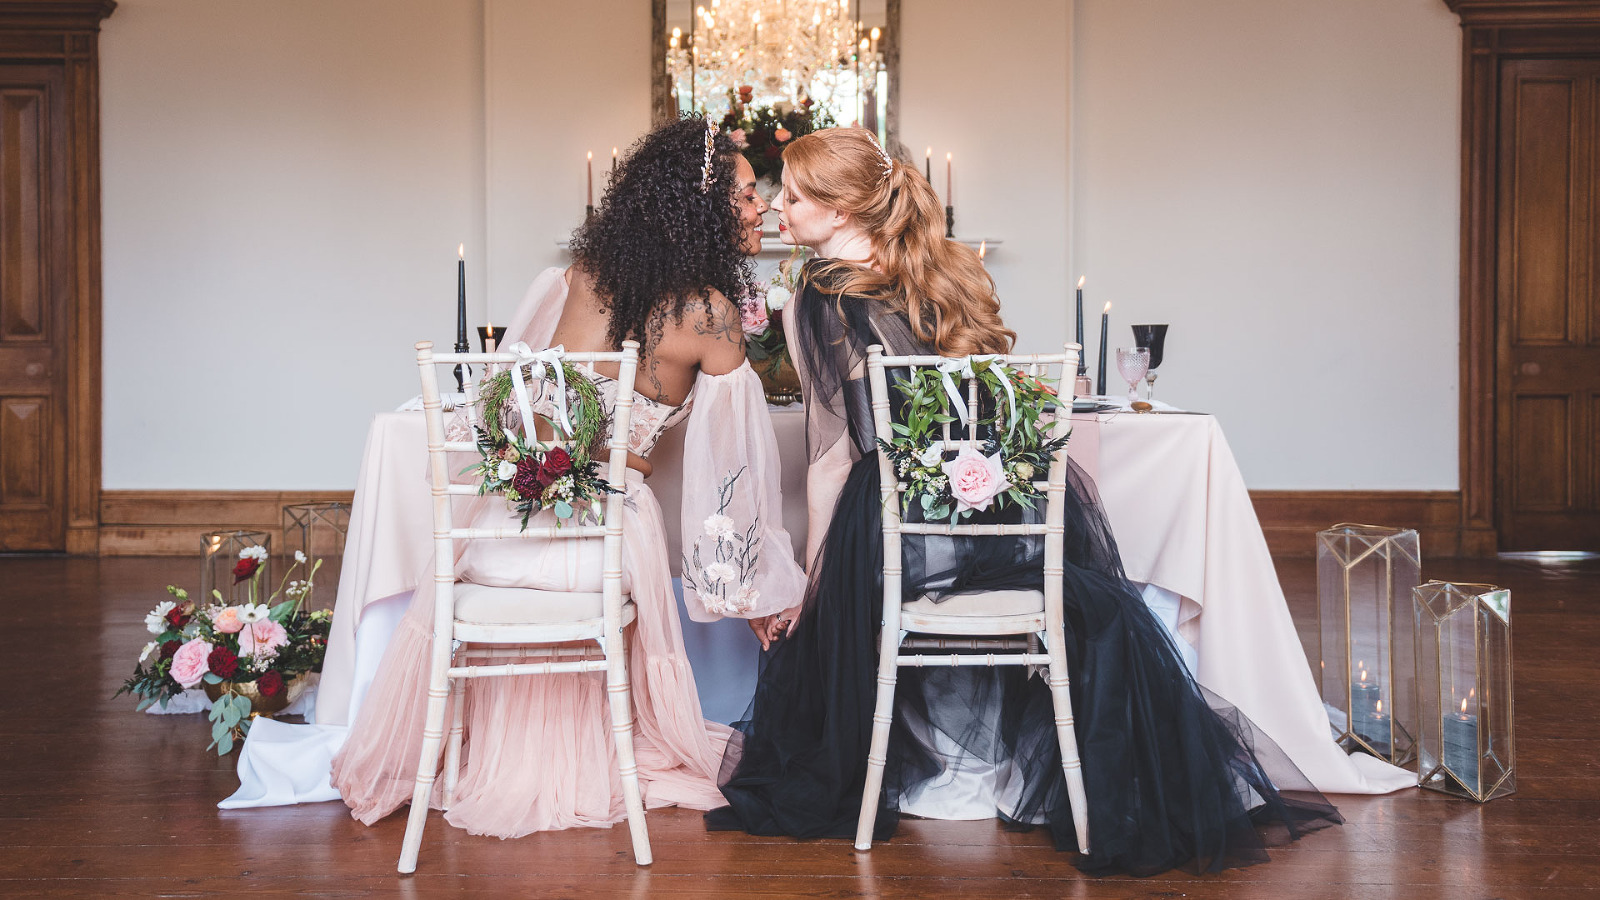 a natural wedding photograph by yorkshire wedding photographer at thicket priory